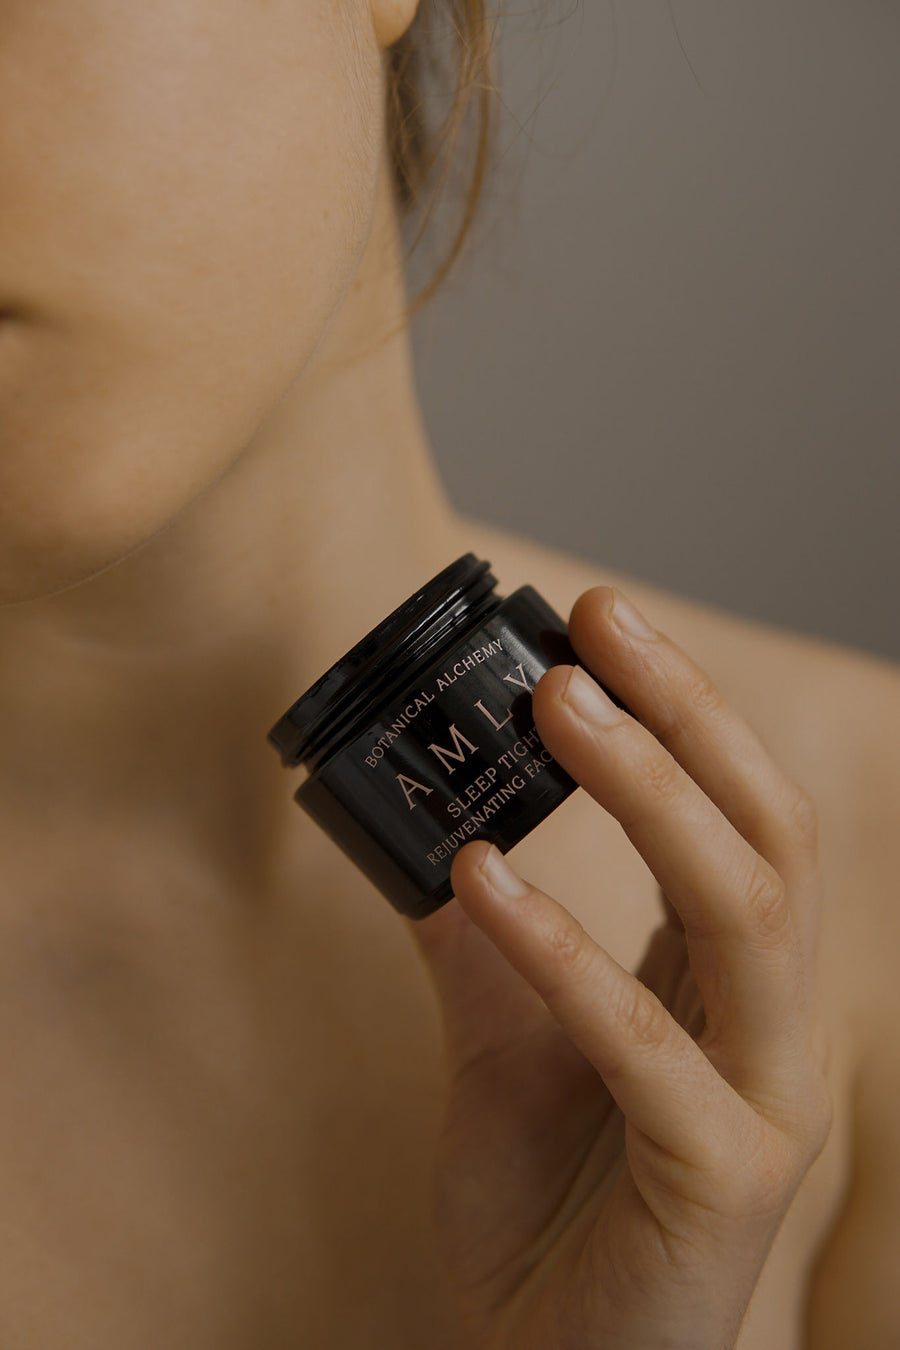 AMLY - Sleep Tight Rejuvenating Face Balm